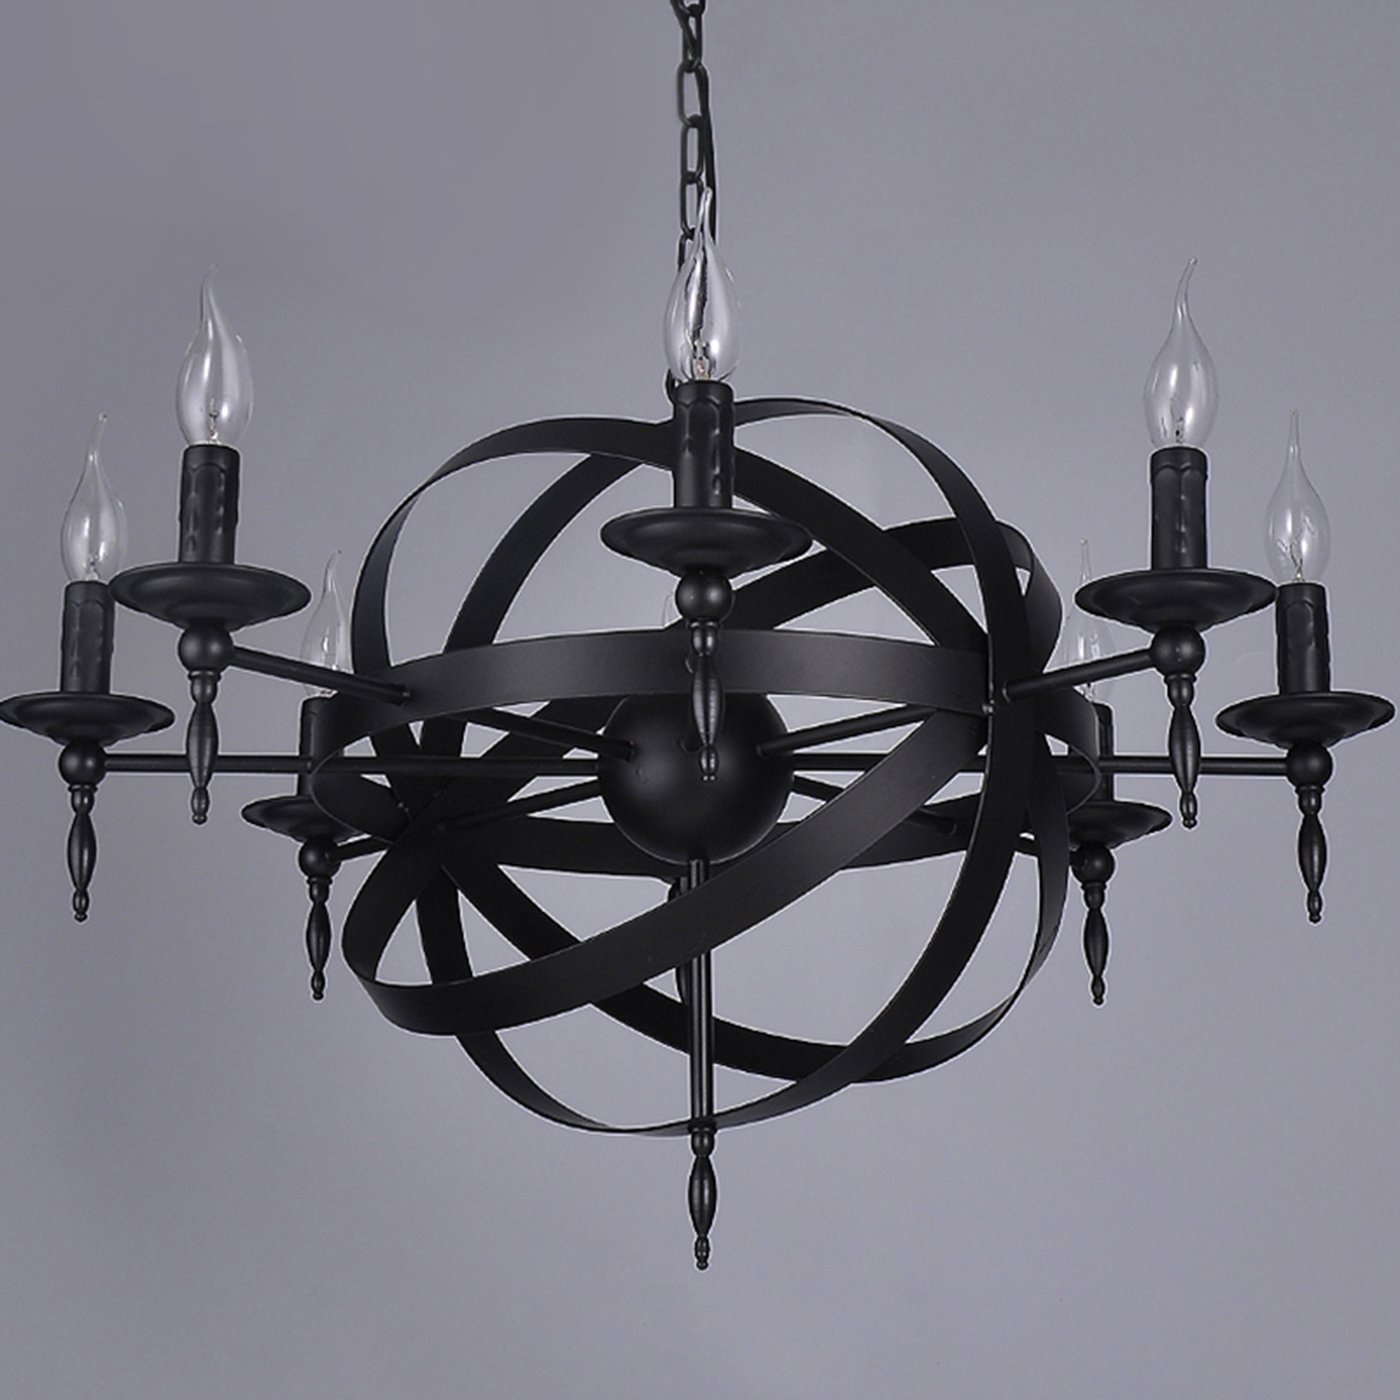 Garwarm Vintage Chandelier 8 lights Antique Pendant light Home